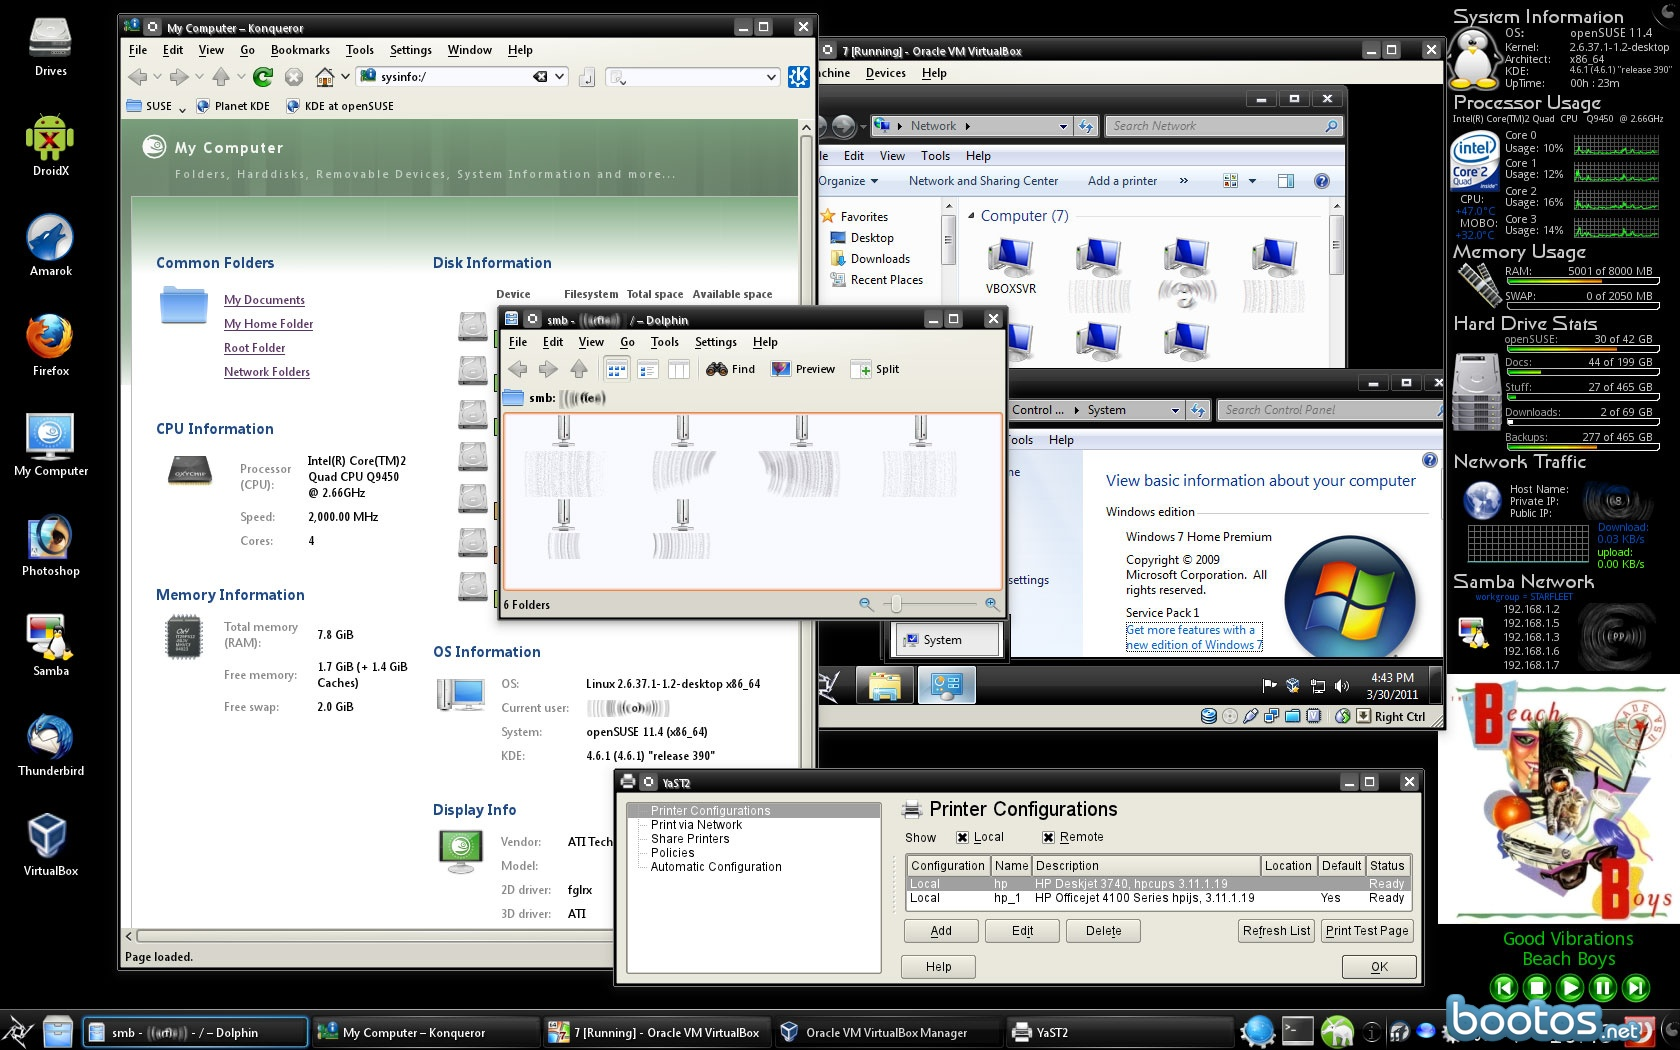 Opensuse 11.4 i586 dvd iso image final rtm release